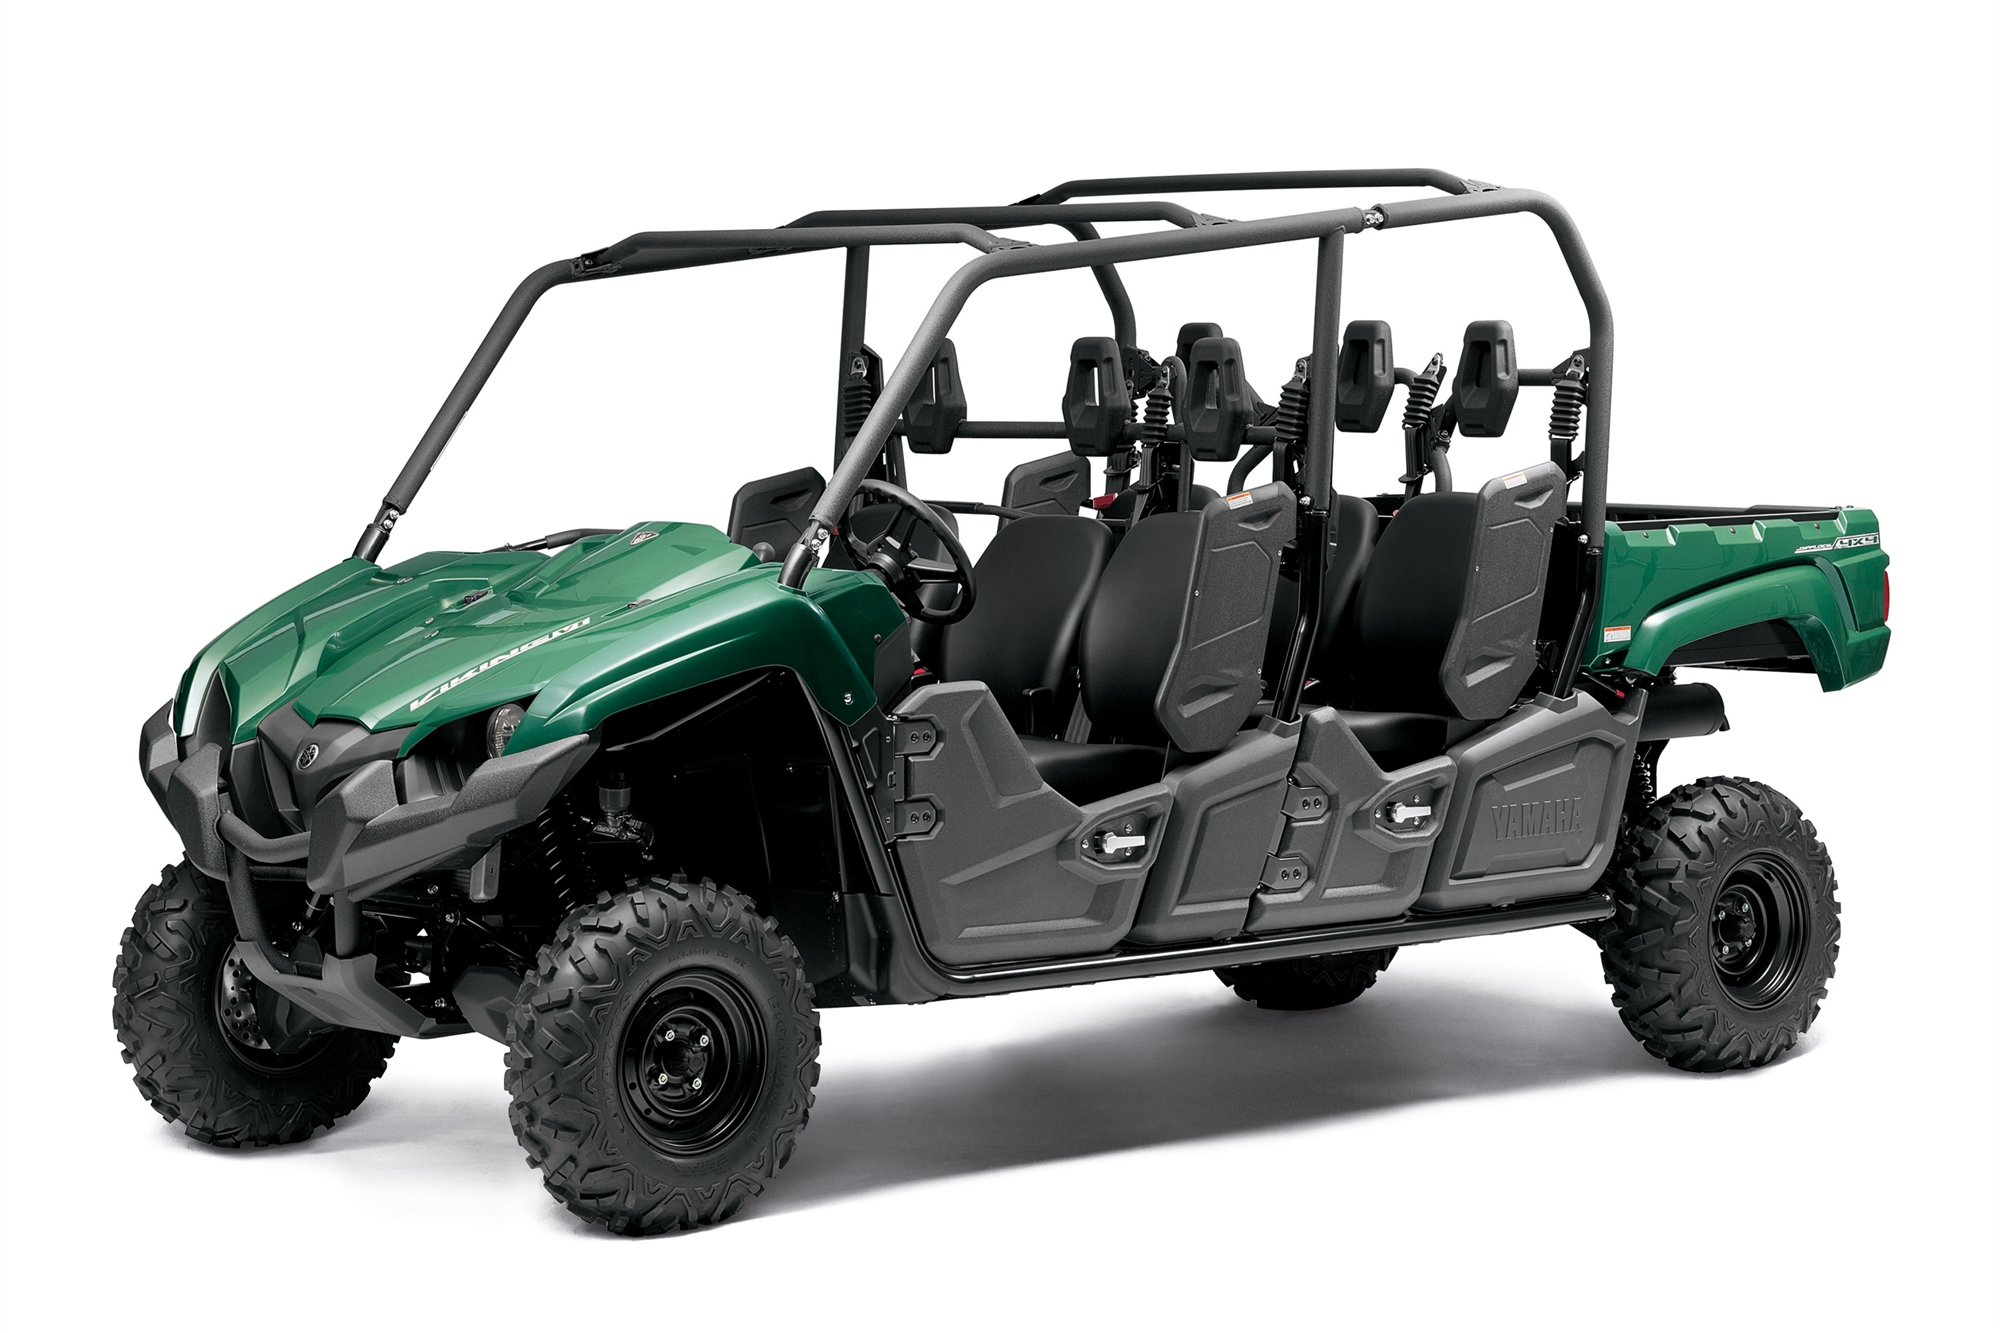 2014 yamaha utv side by side autos post for Yamaha 700 viking